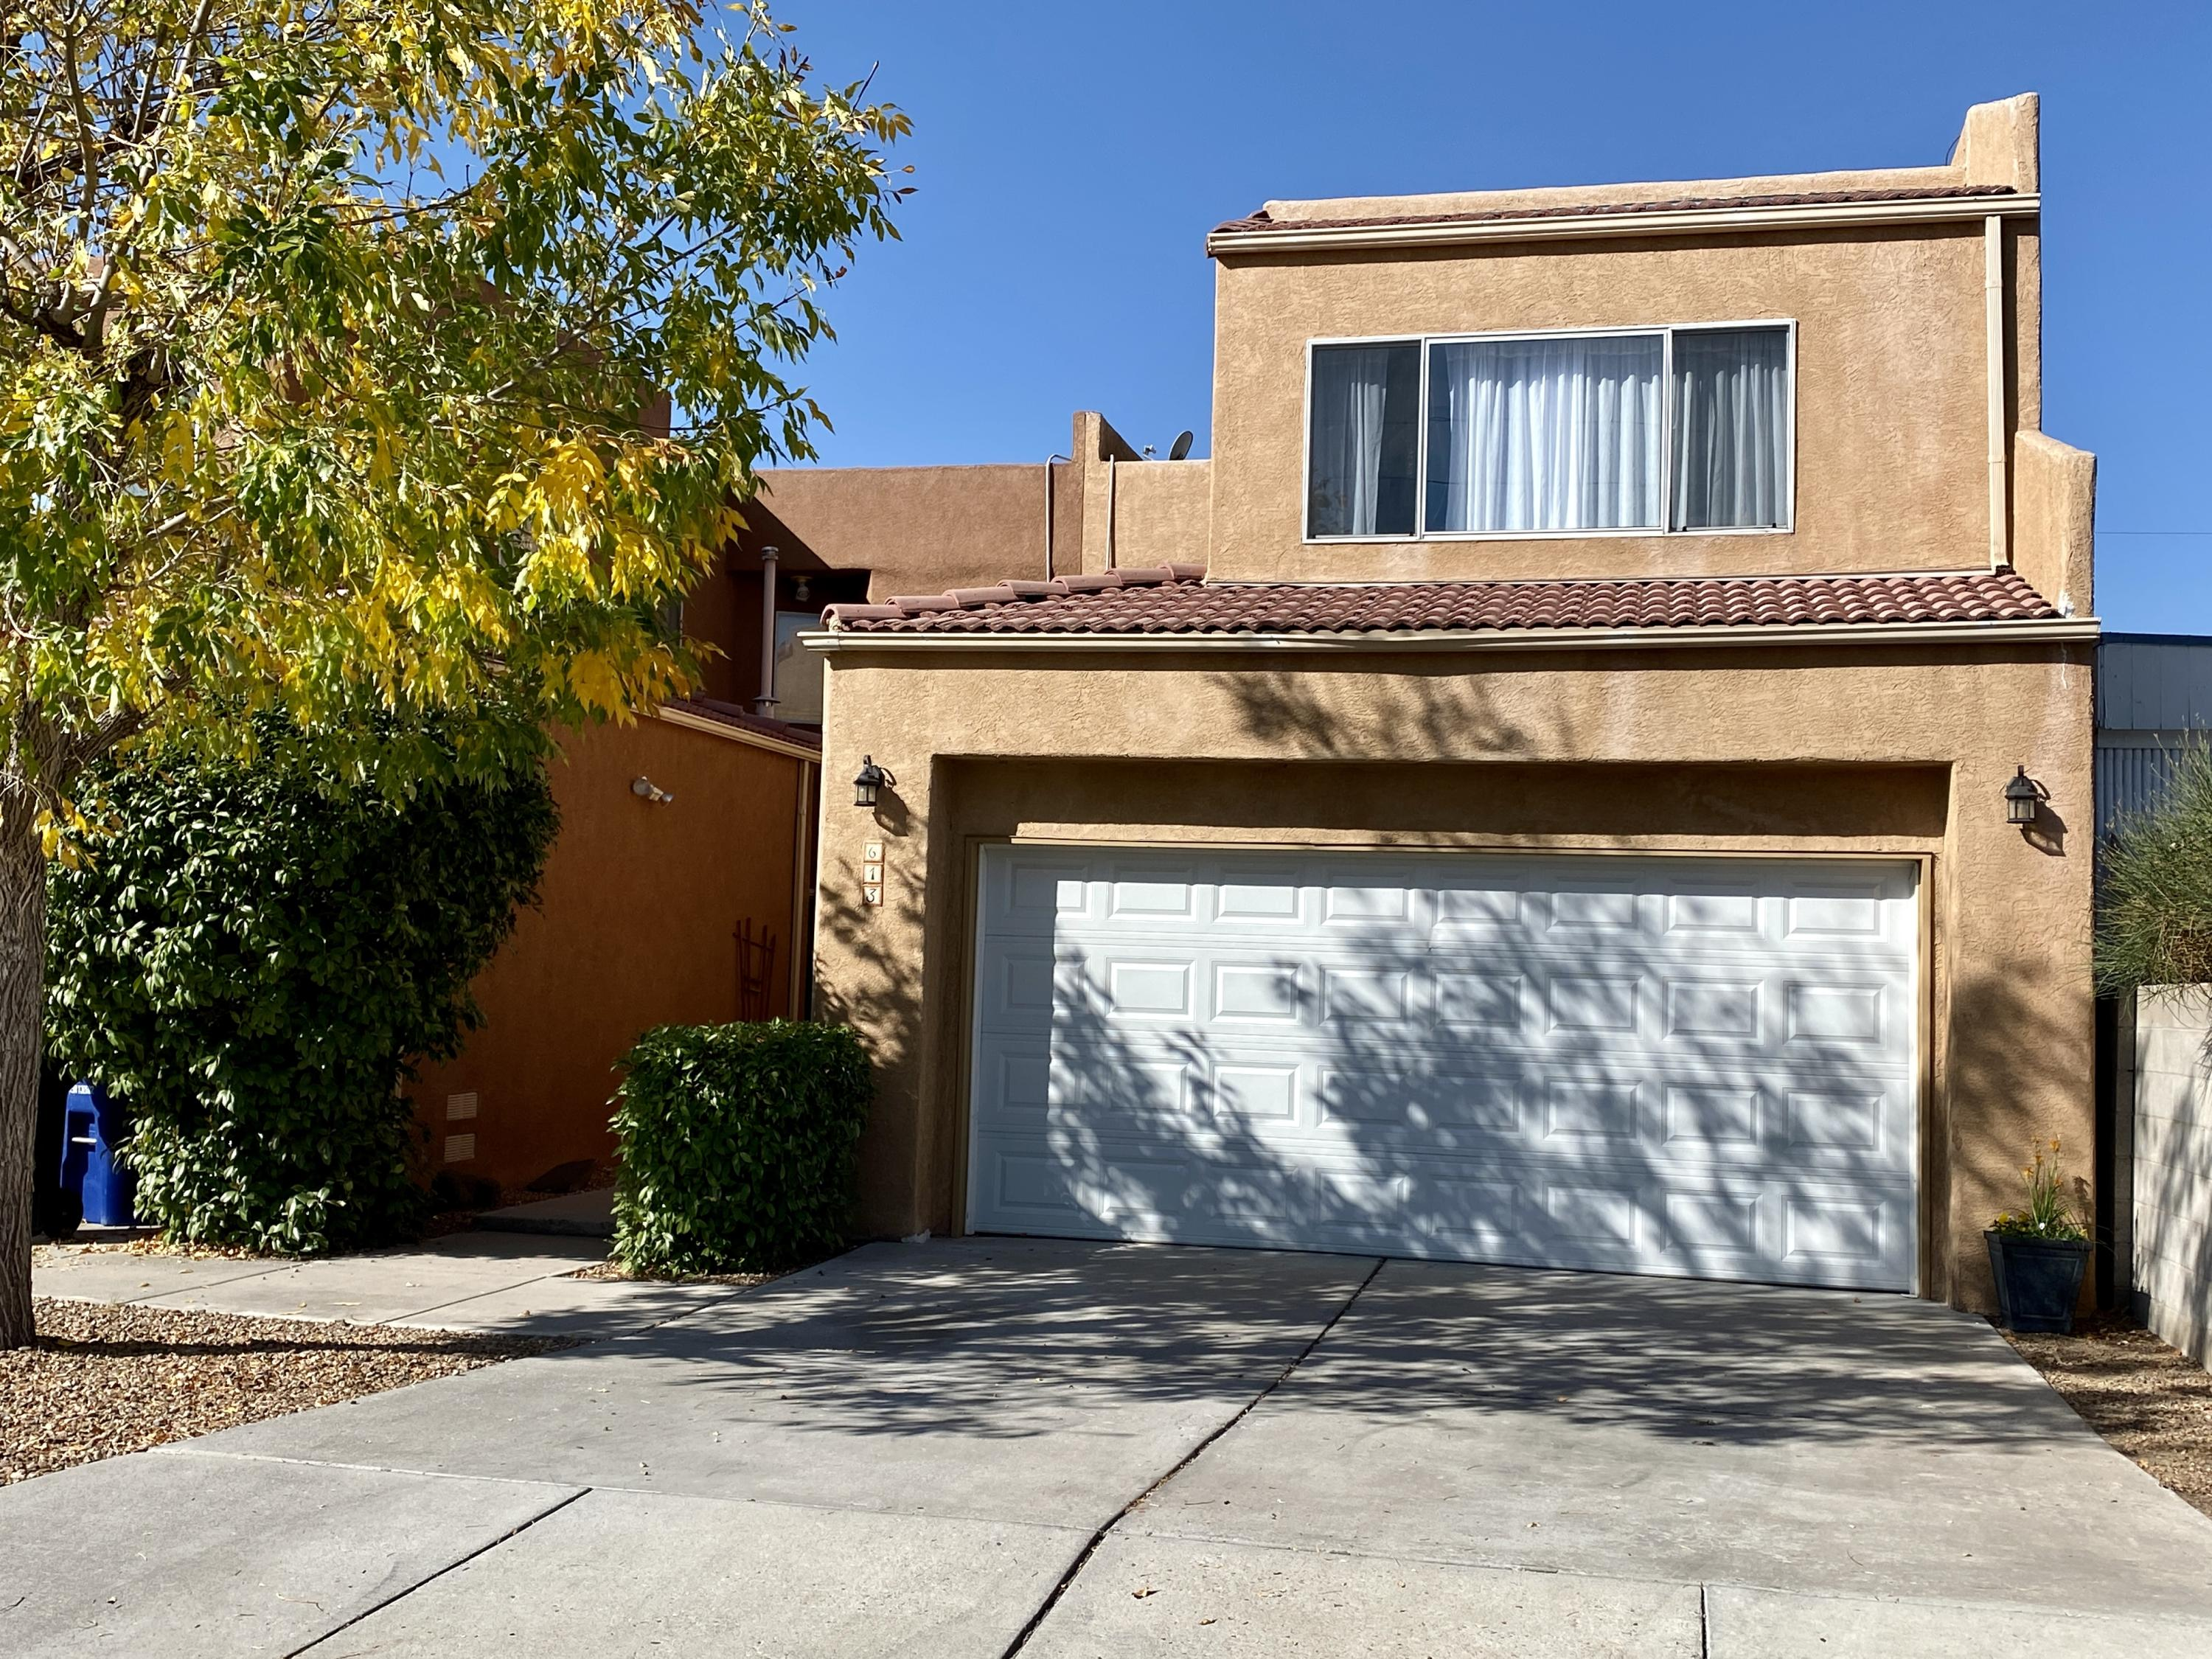 Centrally located 3 Bedroom/3 Bath end unit townhome with 2 car garage & no HOA FEES! 1825 sqft. with room for all your living needs. Well maintained with a New Roof installed in 2019, New Heating/Cooling HVAC system installed summer 2020.  Kitchen with breakfast area & walk-in pantry, stainless steel appliances, cathedral ceiling w/3 skylights to bring in lots of natural light. Gas fireplace, large master bedroom w/walk in closet. Laundry room w/washer and dryer and lots of storage, low maintenance back yard, private gated entry courtyard. Seller to include a home warranty. Pre-inspection available.  Owner is non-smoker and has had no pets during ownership. Close to Nob Hill, CNM, UNM, Sandia Labs, and Kirtland AFB, Marion L. Fox Park & many shopping conveniences.